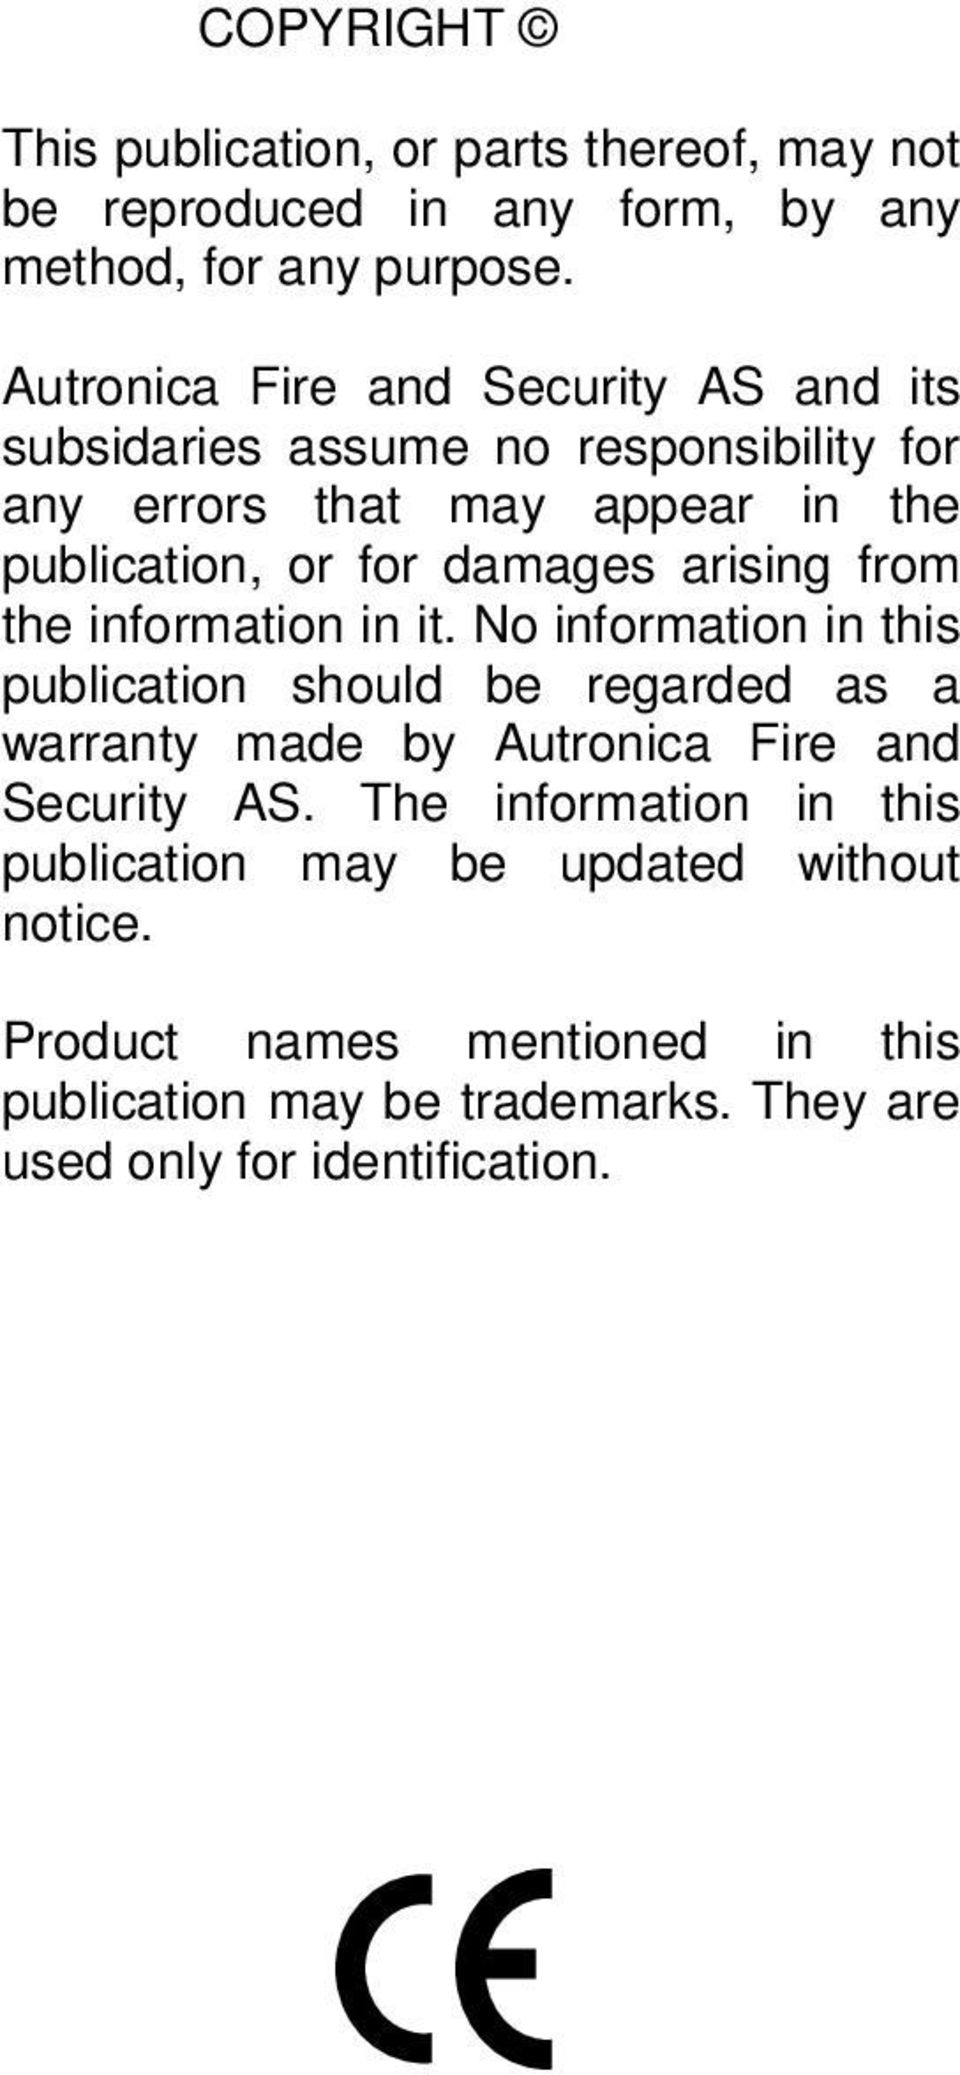 information in it. No information in this publication should be regarded as a warranty made by Autronica Fire and Security AS.